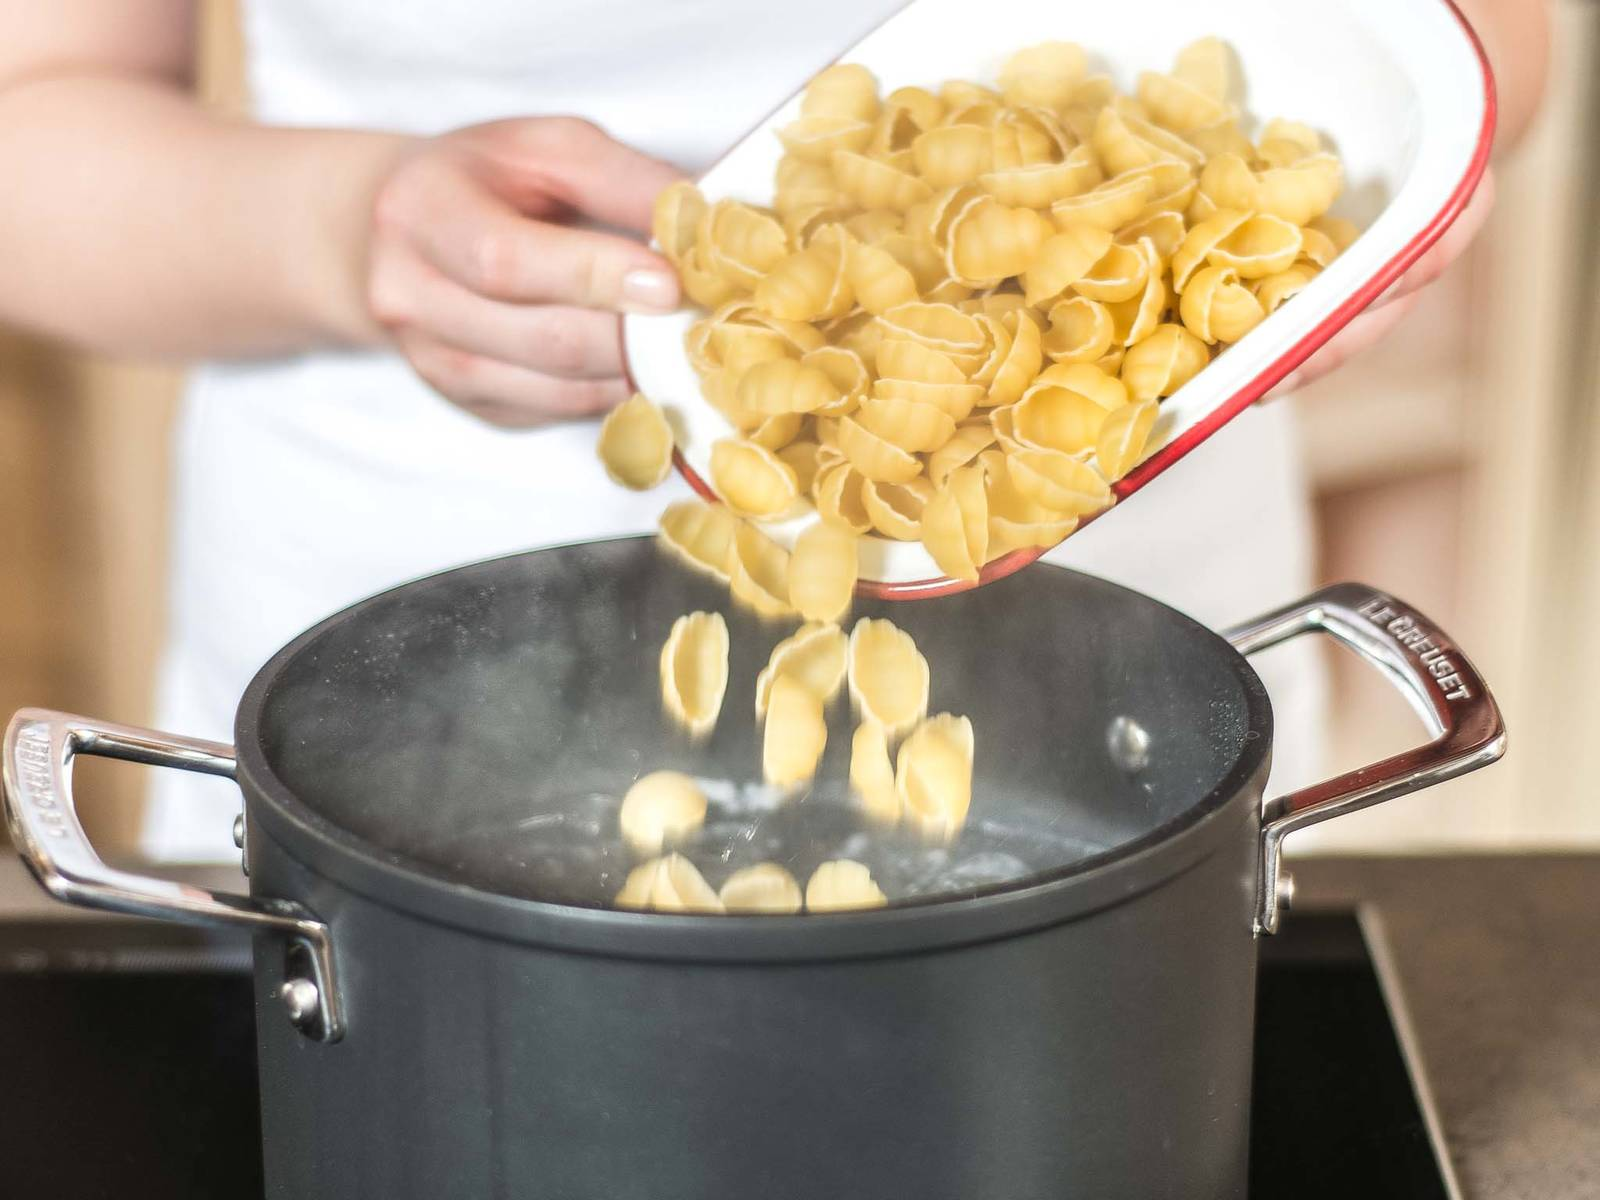 Cook pasta according to the package instructions in salted, boiling water until al dente. Drain and set to one side.